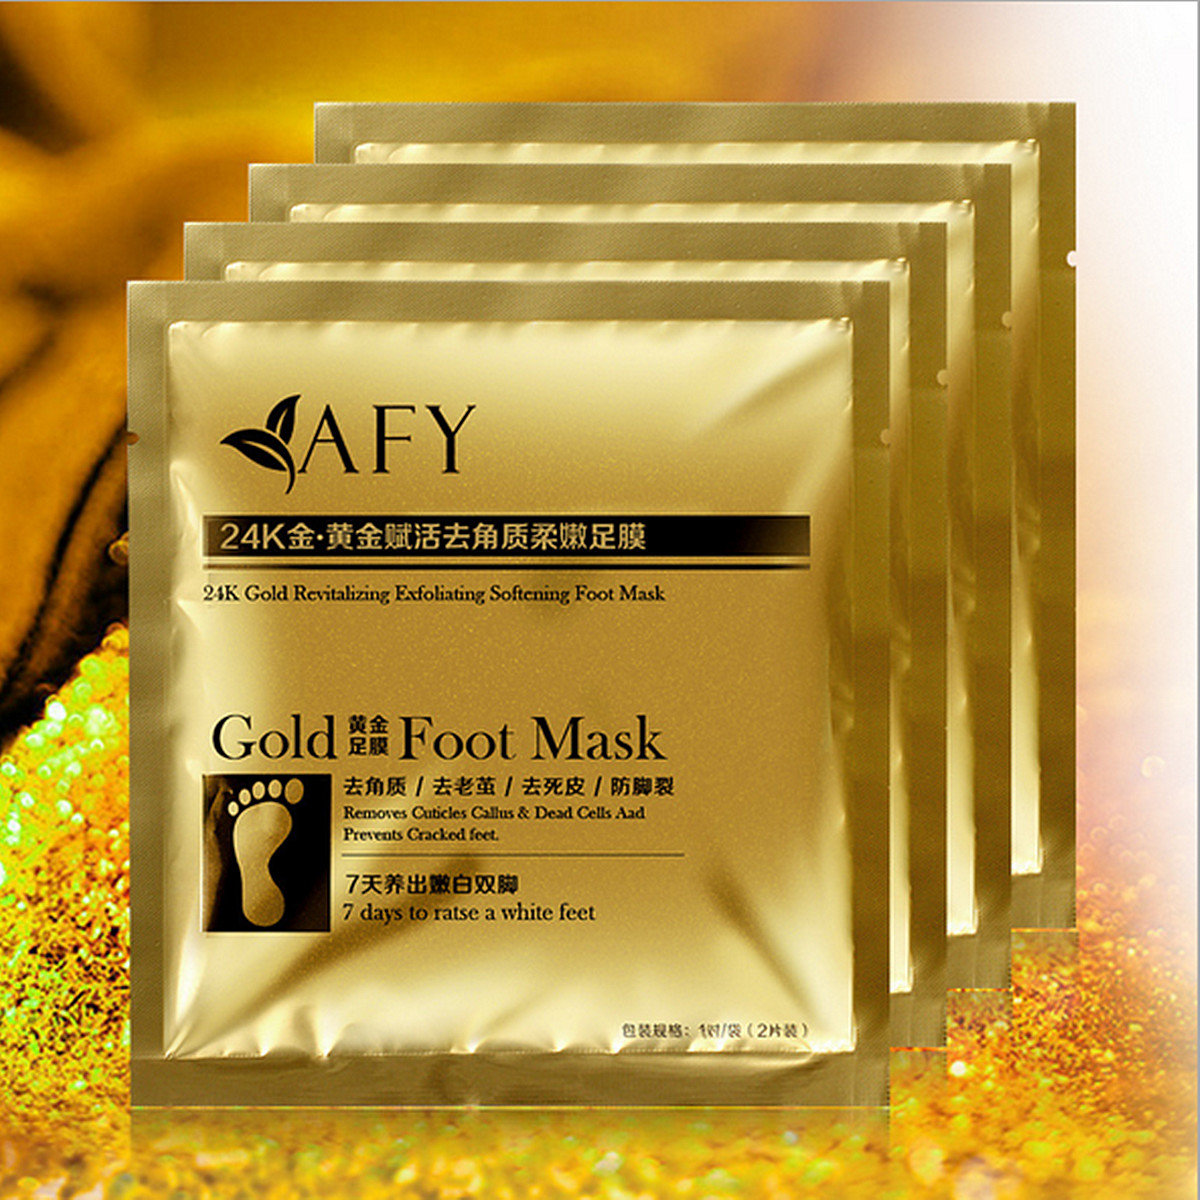 2Pcs/Bag AFY Gold Foot Mask Exfoliating Whitening Nourish Sterilization Revitalizing Feet Care